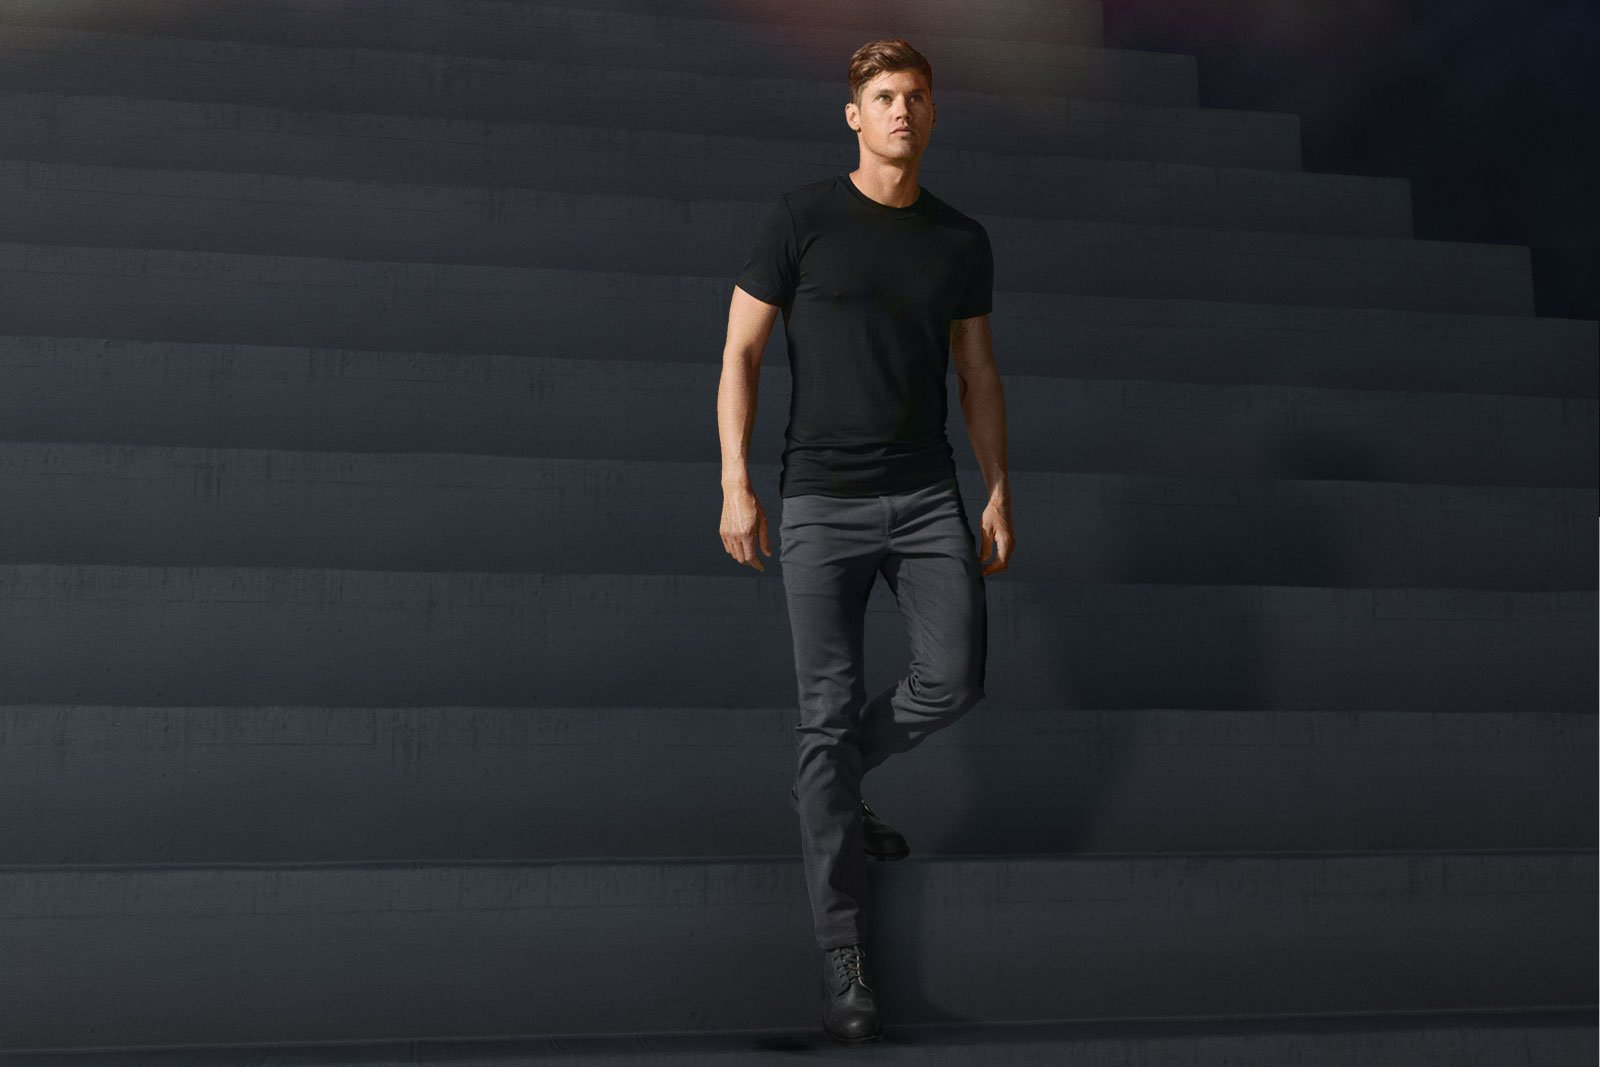 John Paul, center front, wearing Charcoal Slim Dungarees, descending steps. Model is  6' tall, weighs 165 lbs and is wearing Size 31. Model is also wearing our Ultrafine Merino Cut One T-Shirt in Black and a pair of Red Wing Iron Ranger boots.